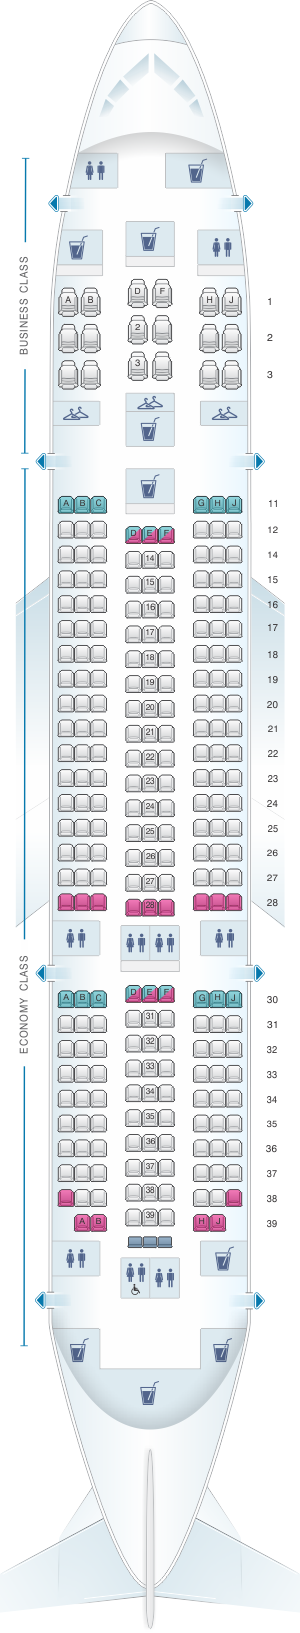 Seat map for Air India Boeing B787 Dreamliner